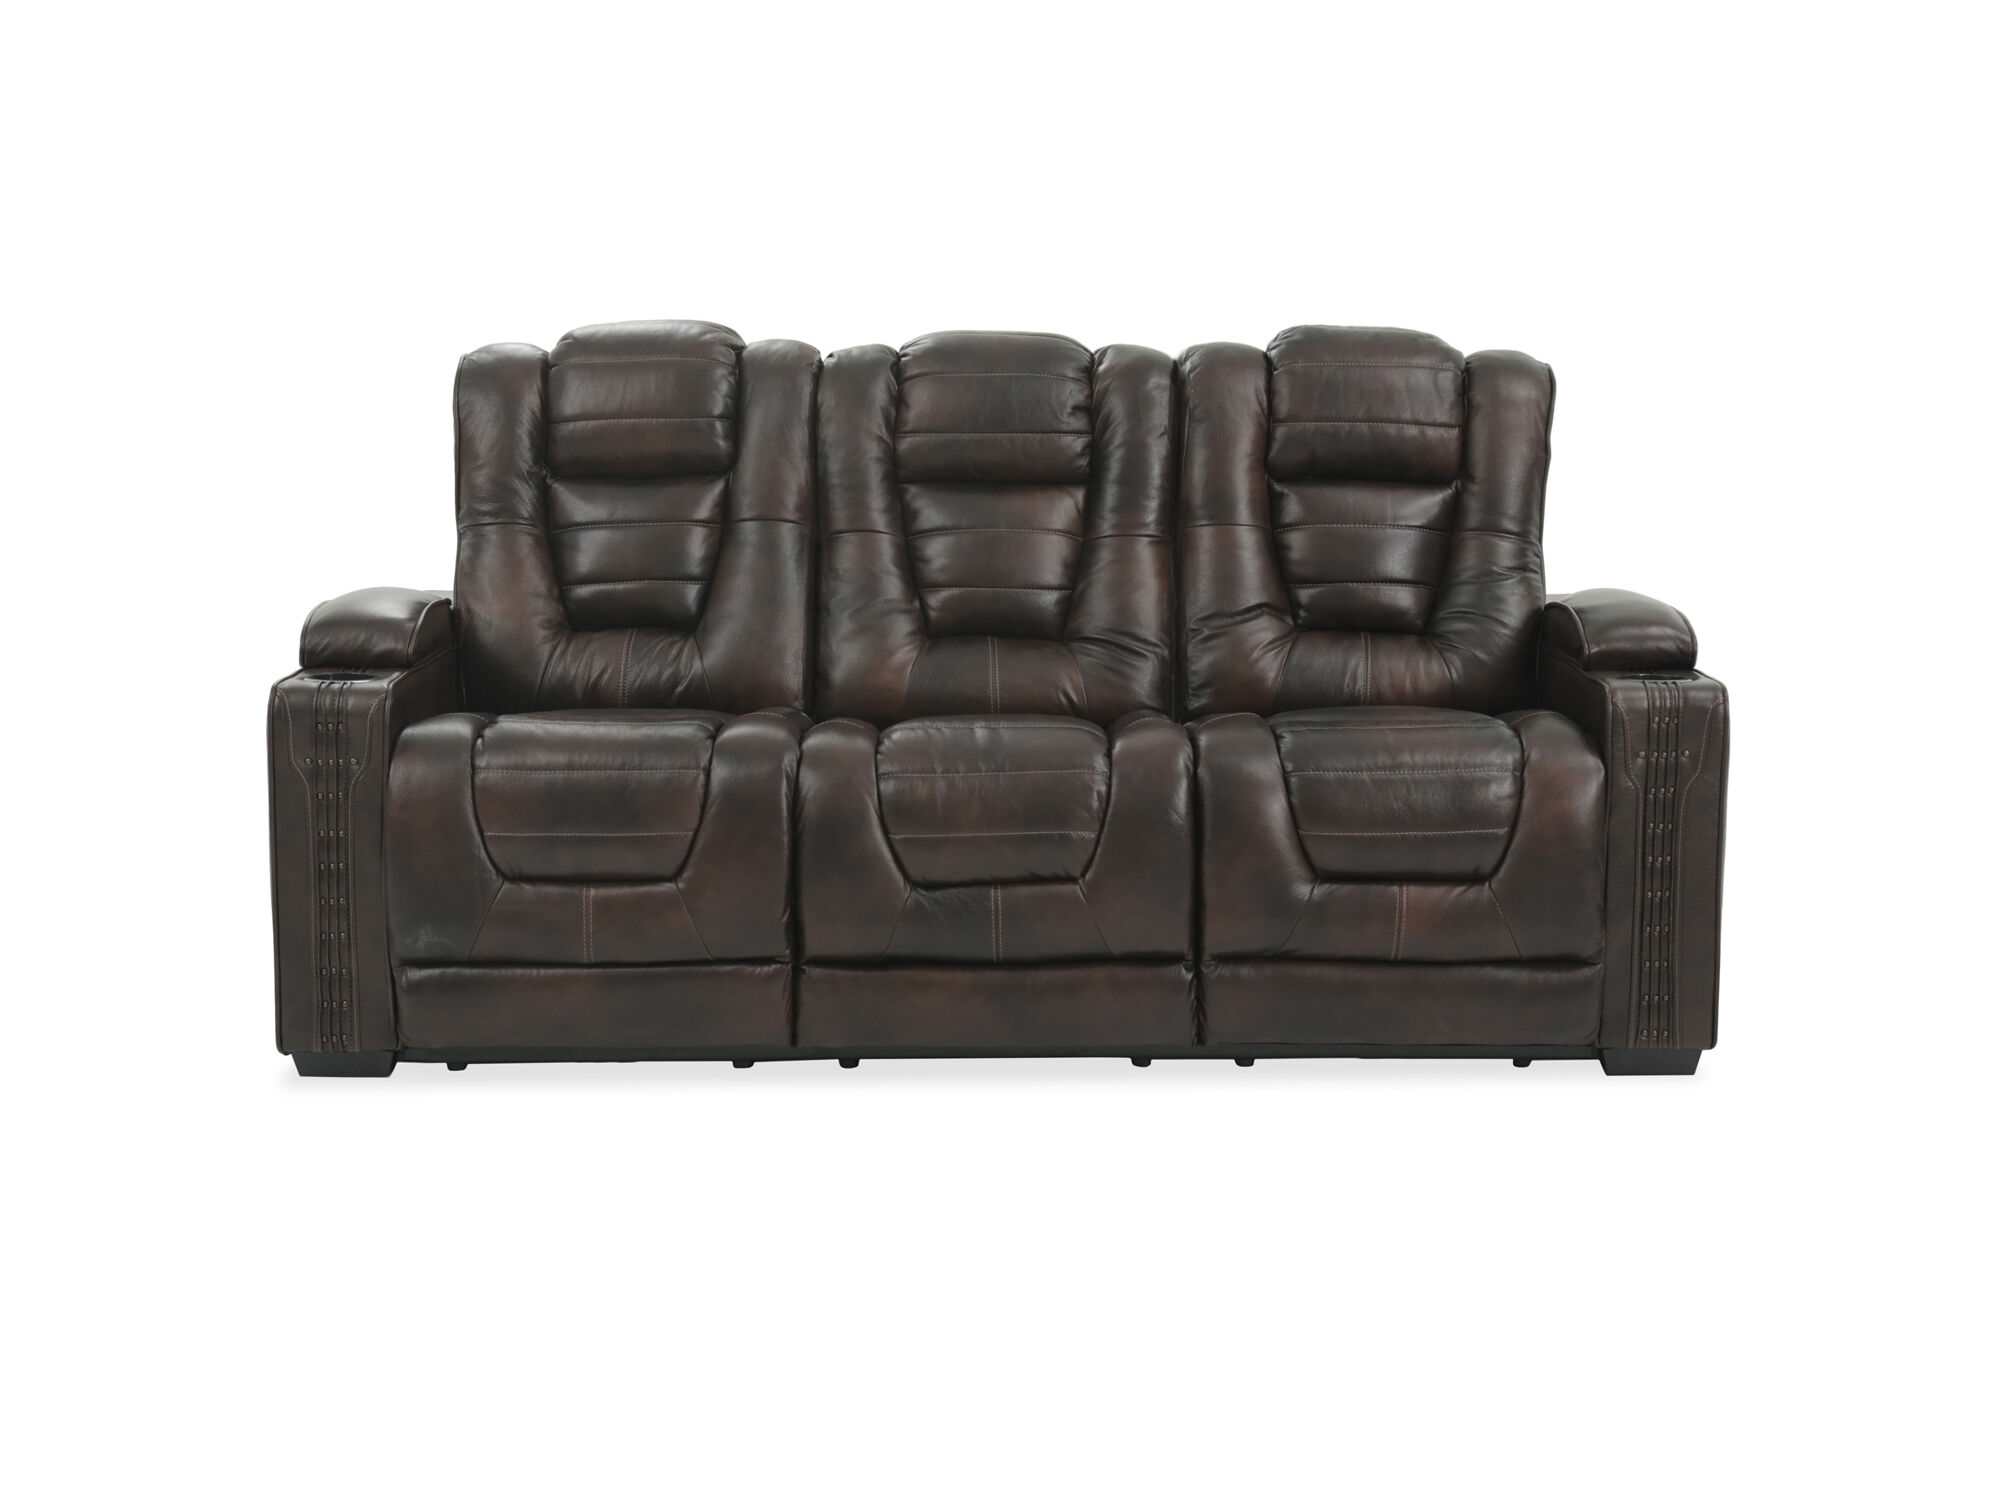 Thickly Padded Seats, Tufted Back And Cushy Arms Ensure Unmatched Comfort  All Day Long. This Sofa Also Comes With Cup Holders On Both Armrests For  Added ...